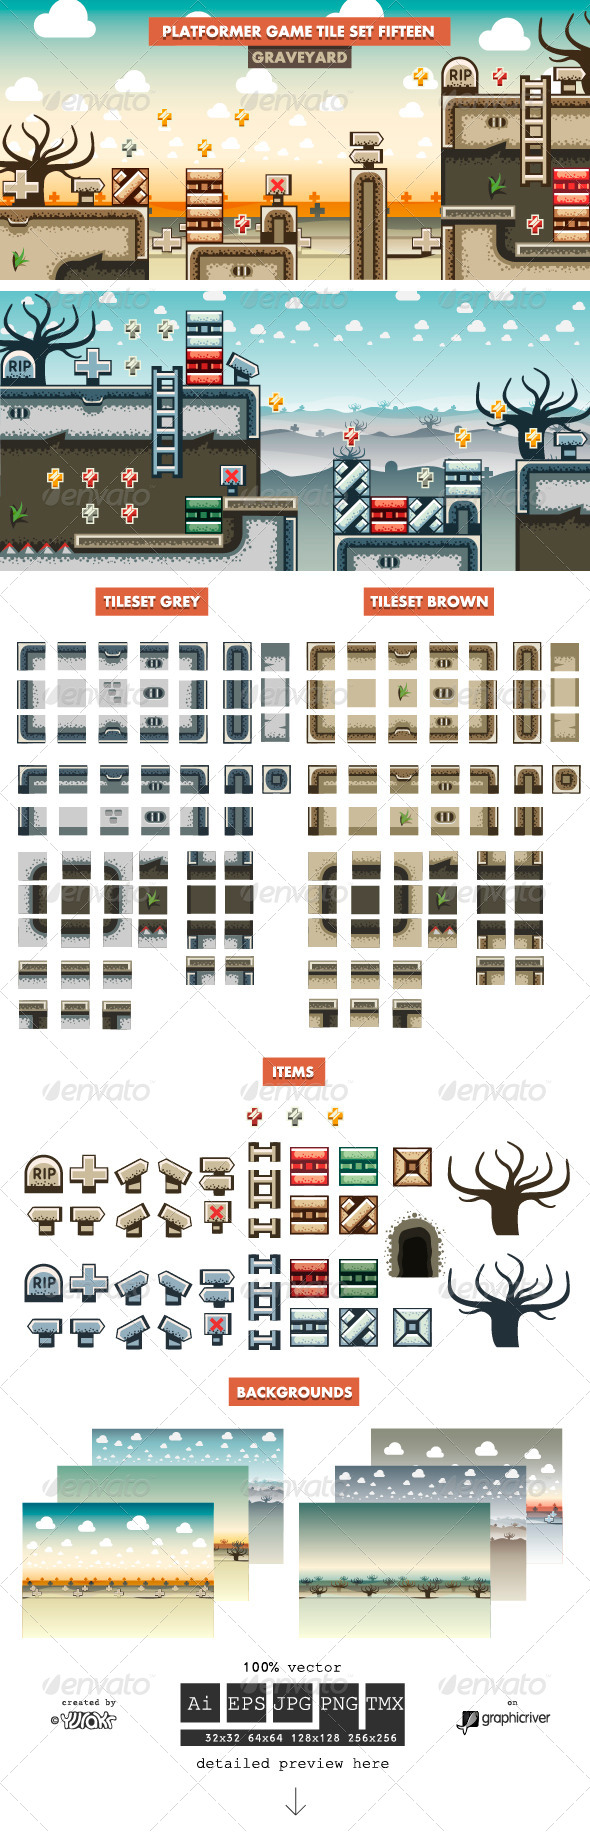 GraphicRiver Platformer Game Tile Set Fifteen 8782135